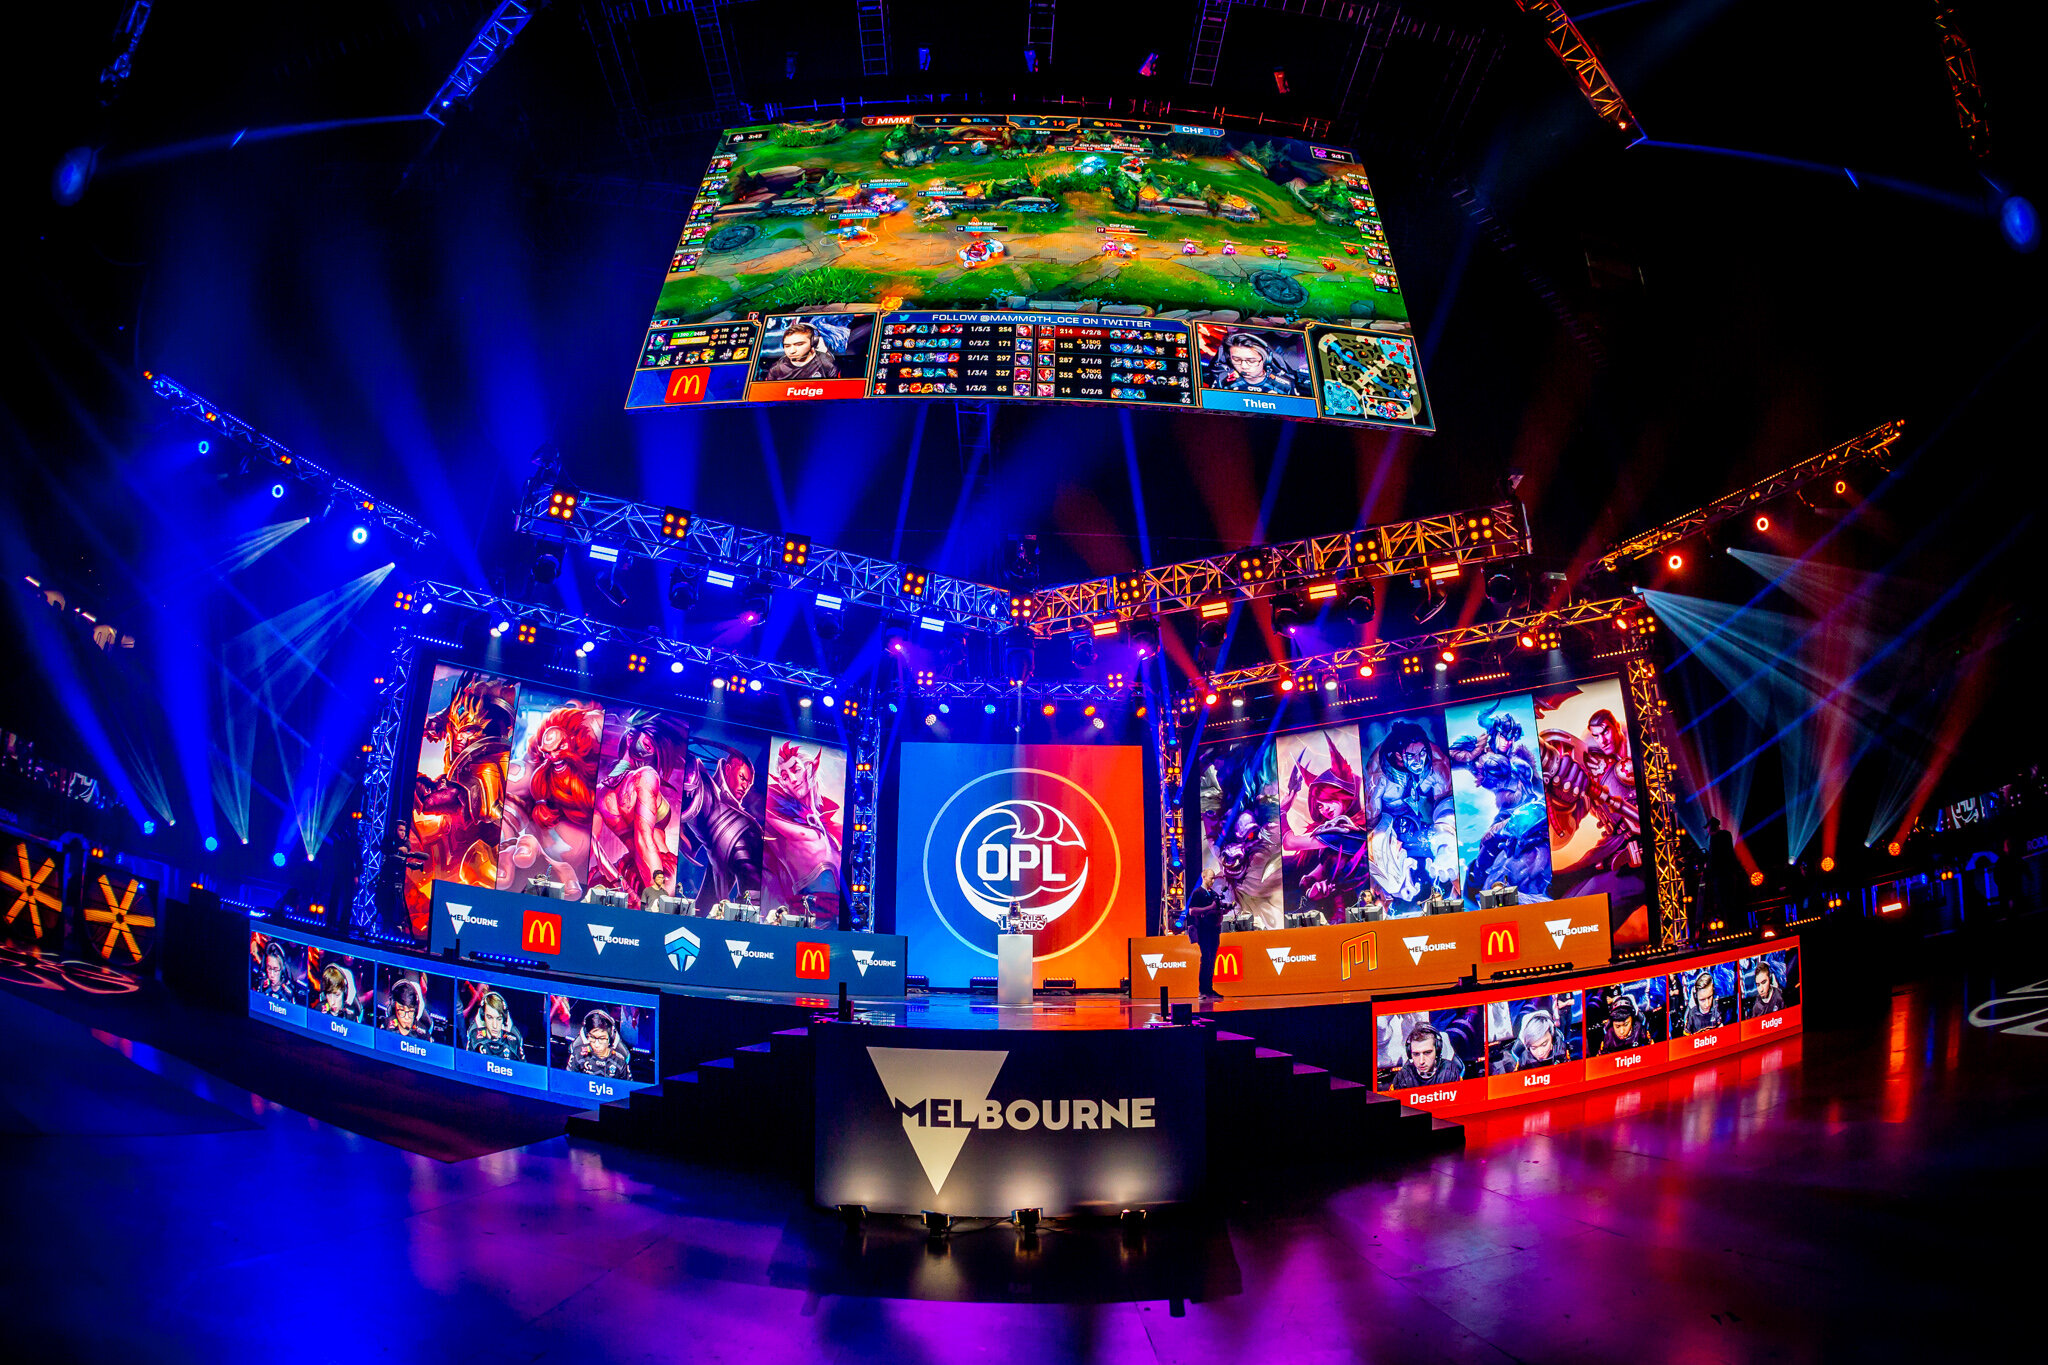 League of Legends OPL finals for MEO 2019